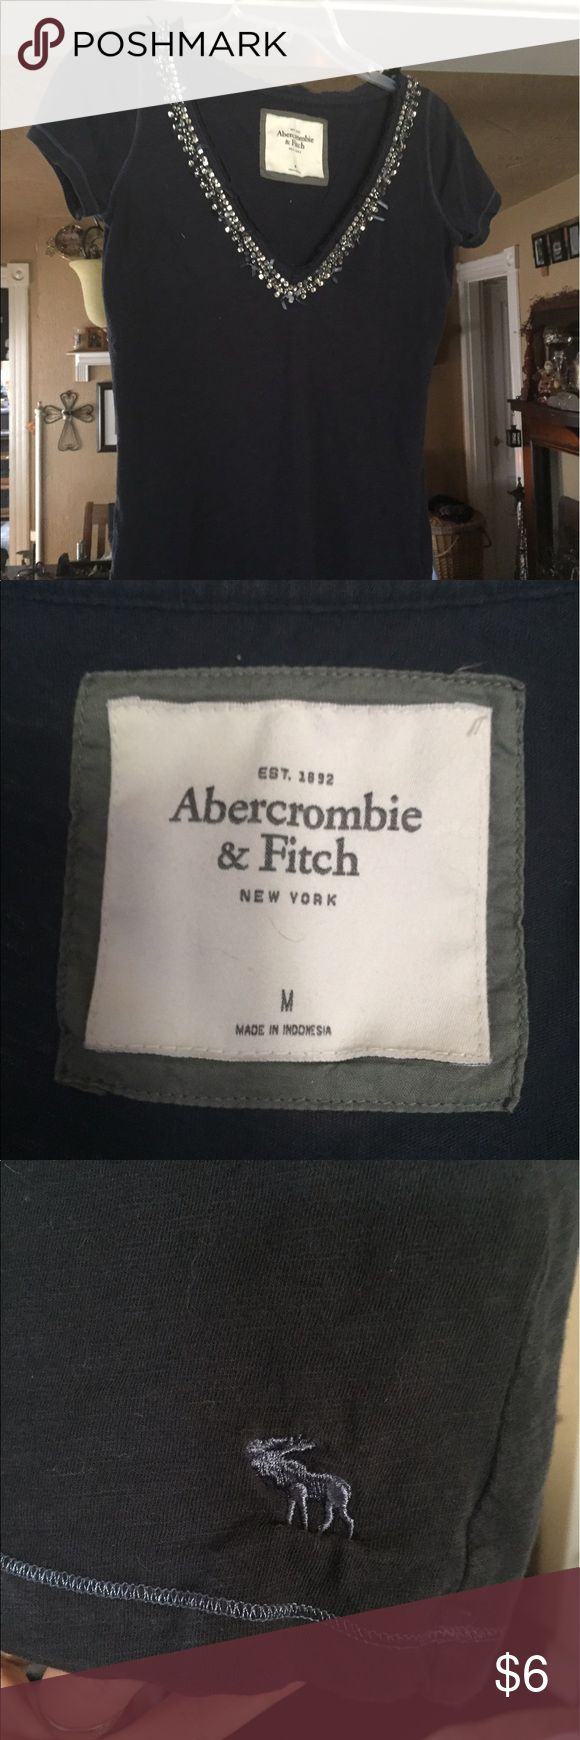 Abercrombie and fitch Tshirt Ladies Abercrombie and fitch Tshirt with embellishment along the vneck collar Abercrombie & Fitch Tops Tees - Short Sleeve